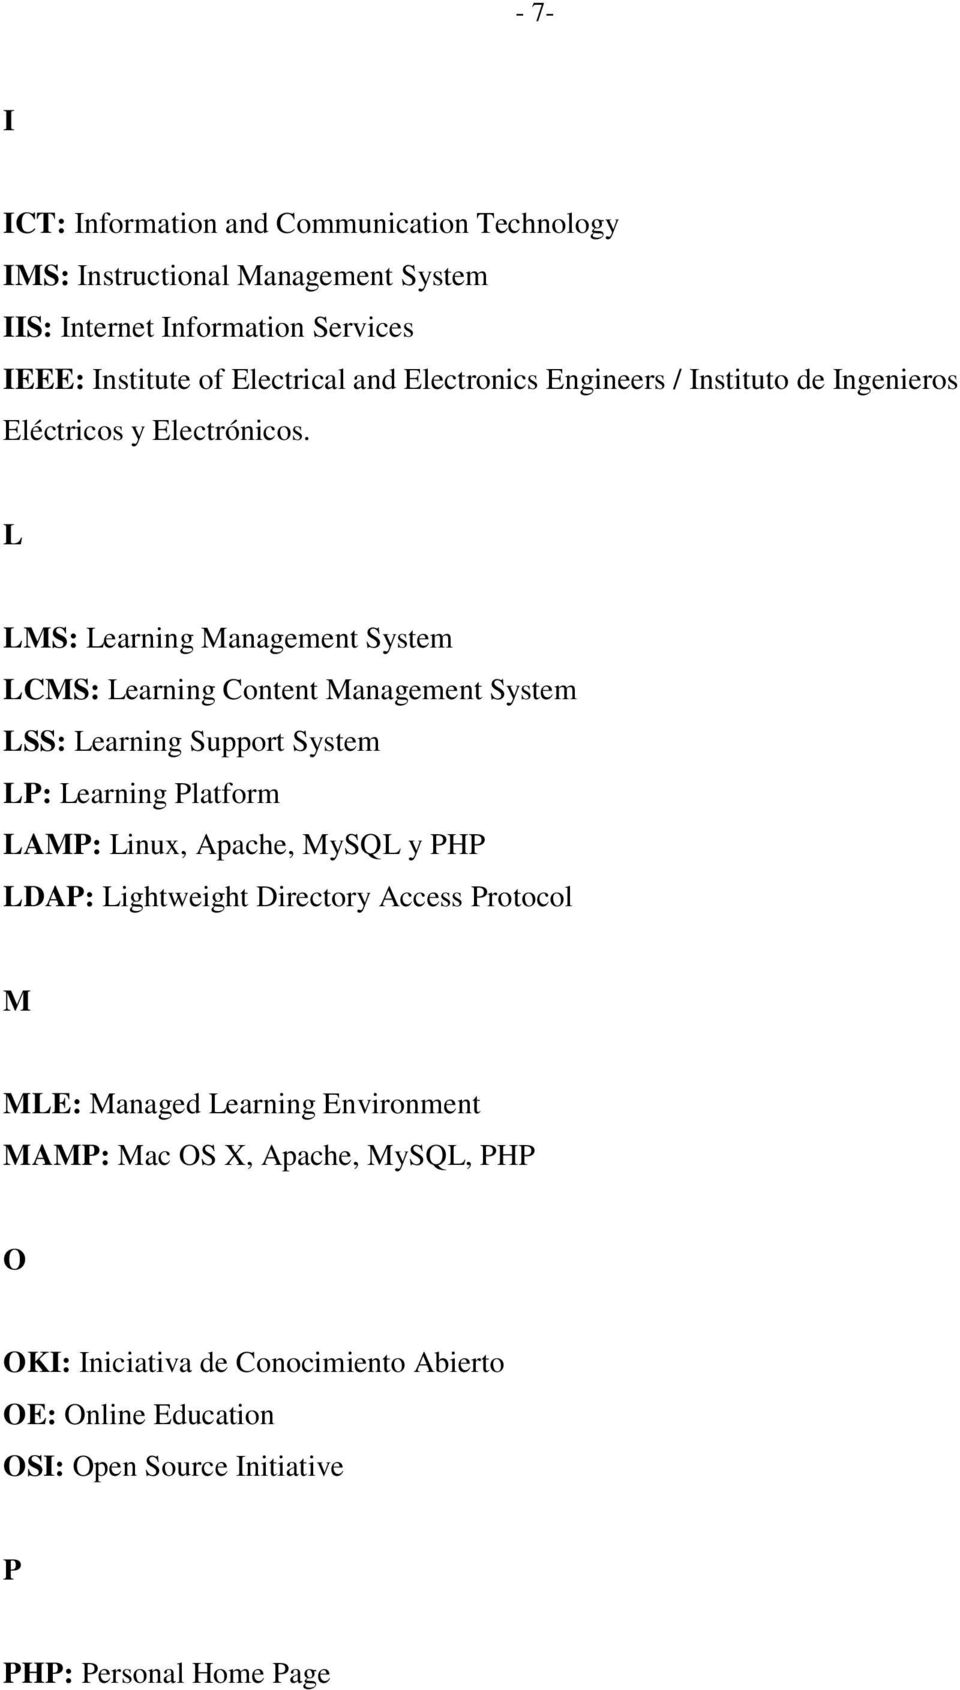 L LMS: Learning Management System LCMS: Learning Content Management System LSS: Learning Support System LP: Learning Platform LAMP: Linux, Apache, MySQL y